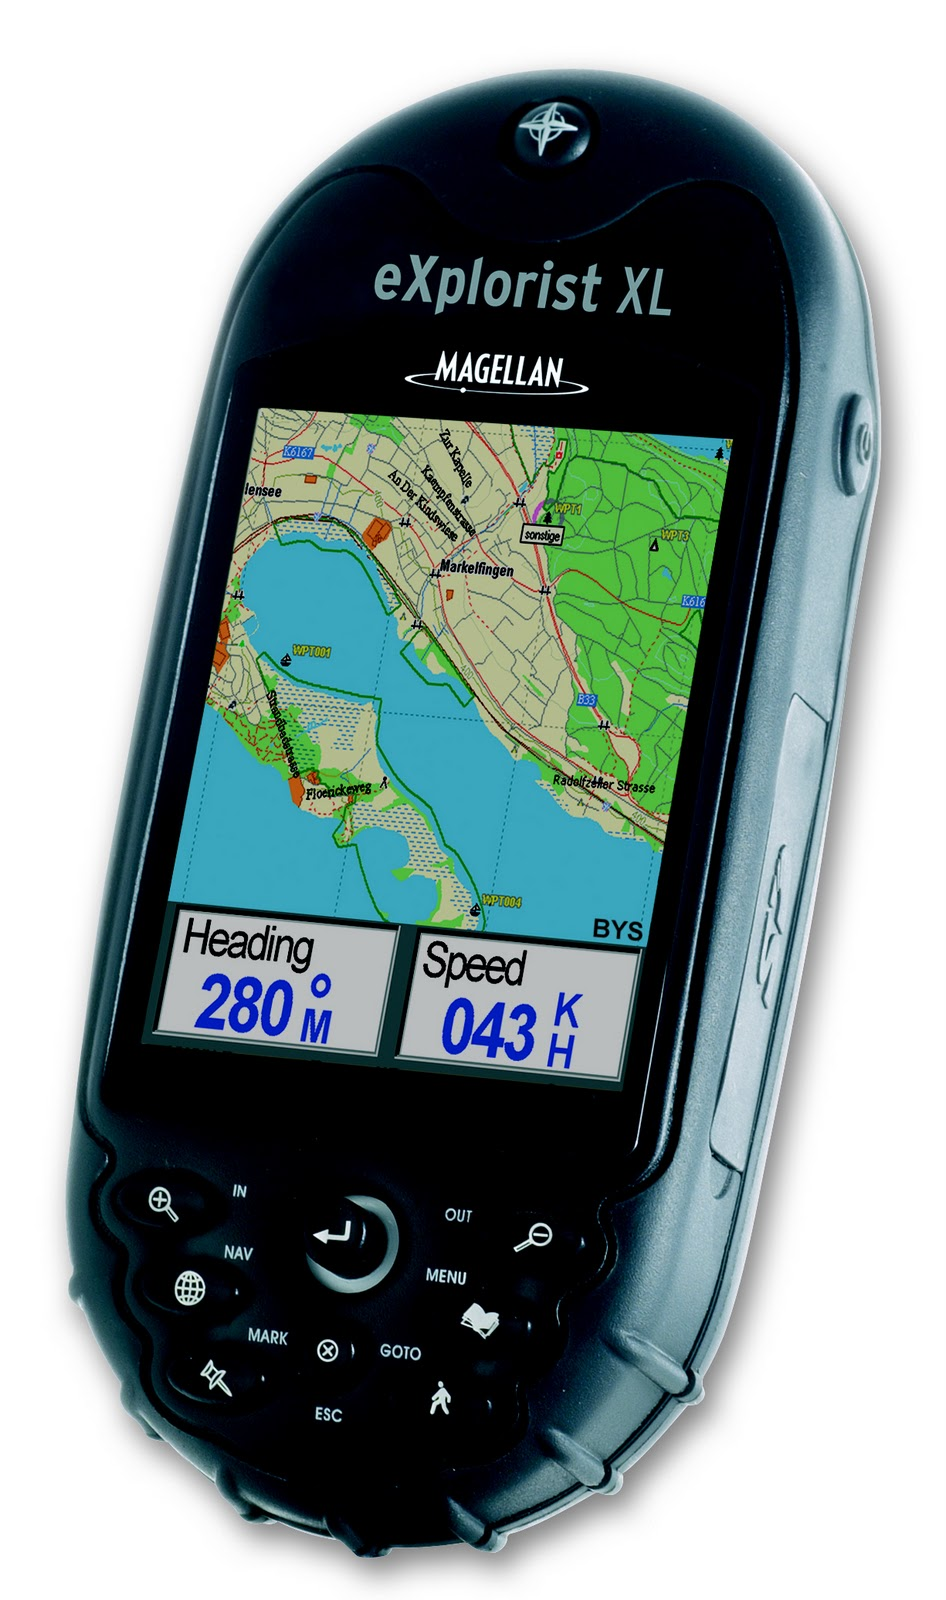 4514631 with Magellan Explorist Xl on 1314630 also Bastei moreover 4514631 further 4514631 also Push Out System.